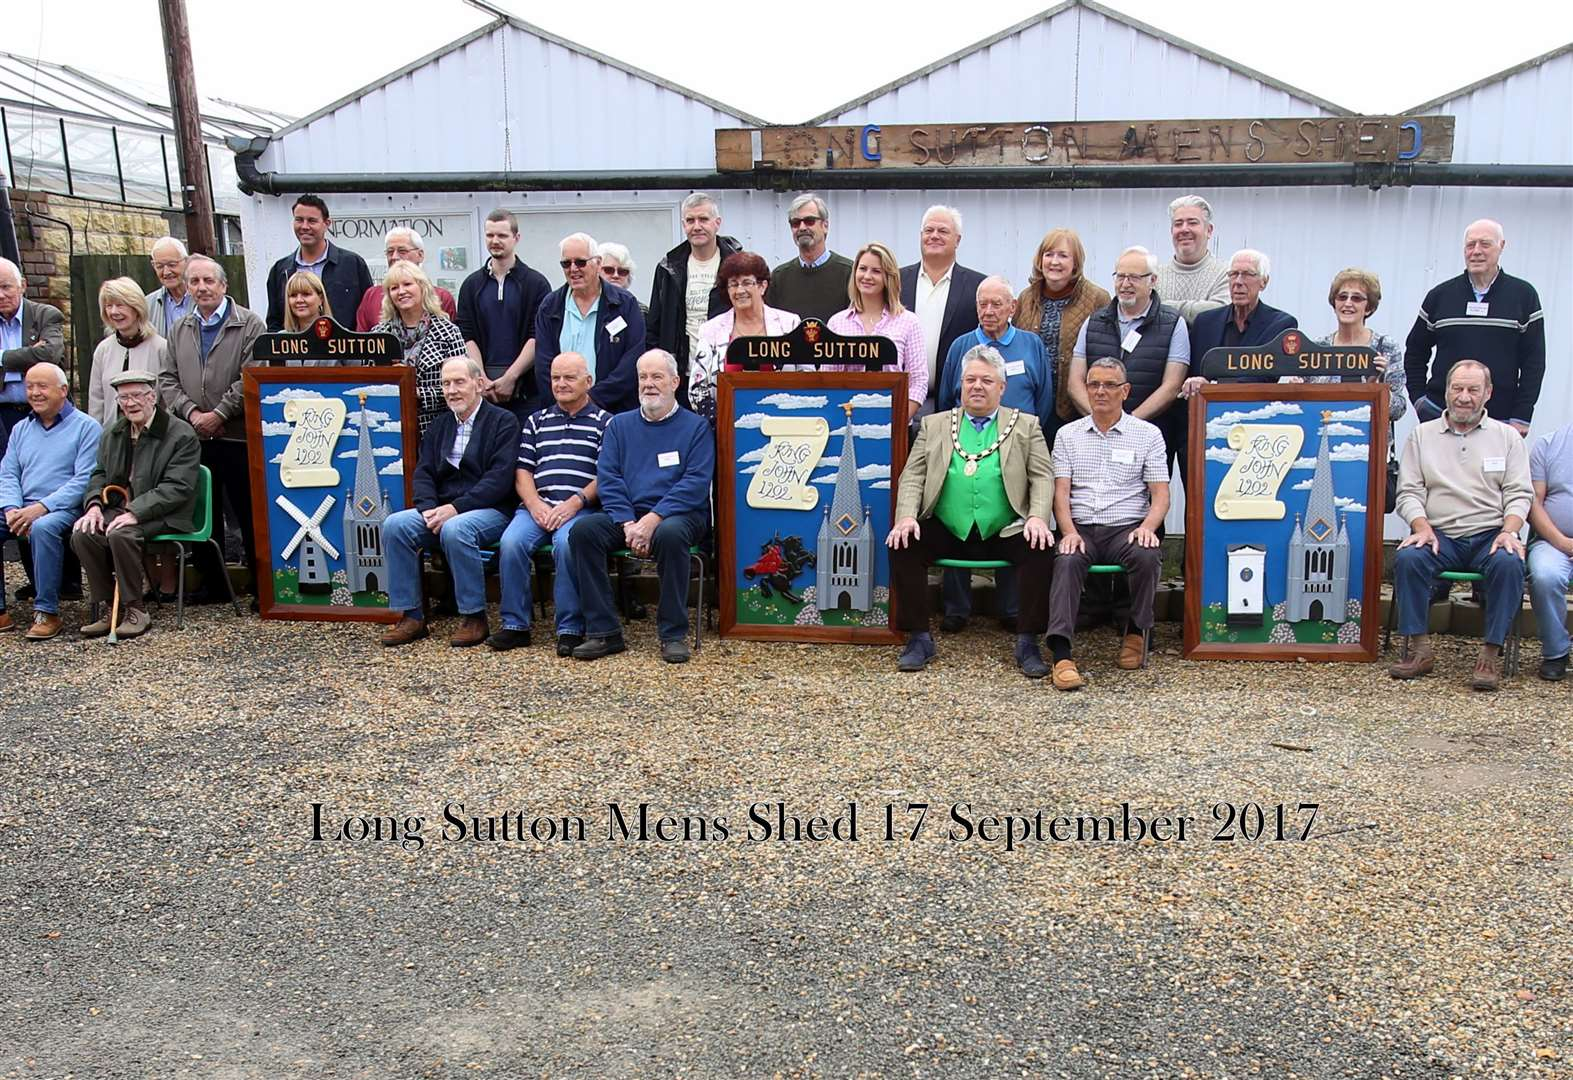 Long Sutton Men's Shed praised for support of cancer patient